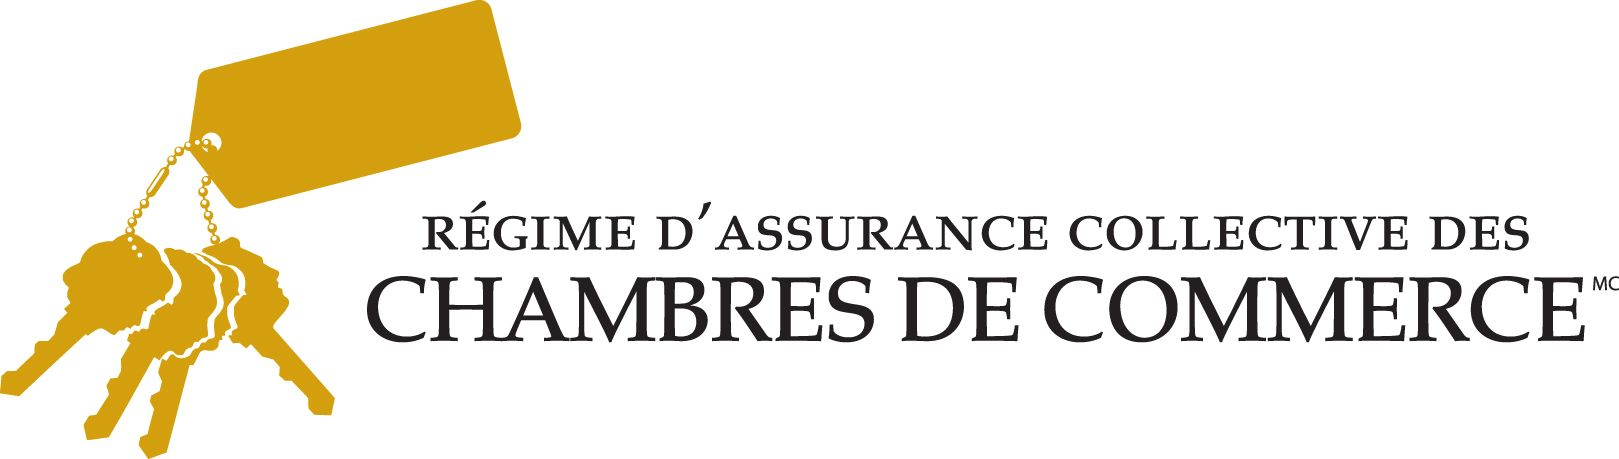 Logo_régimed'assurancecollectivedeschambresdecommerce